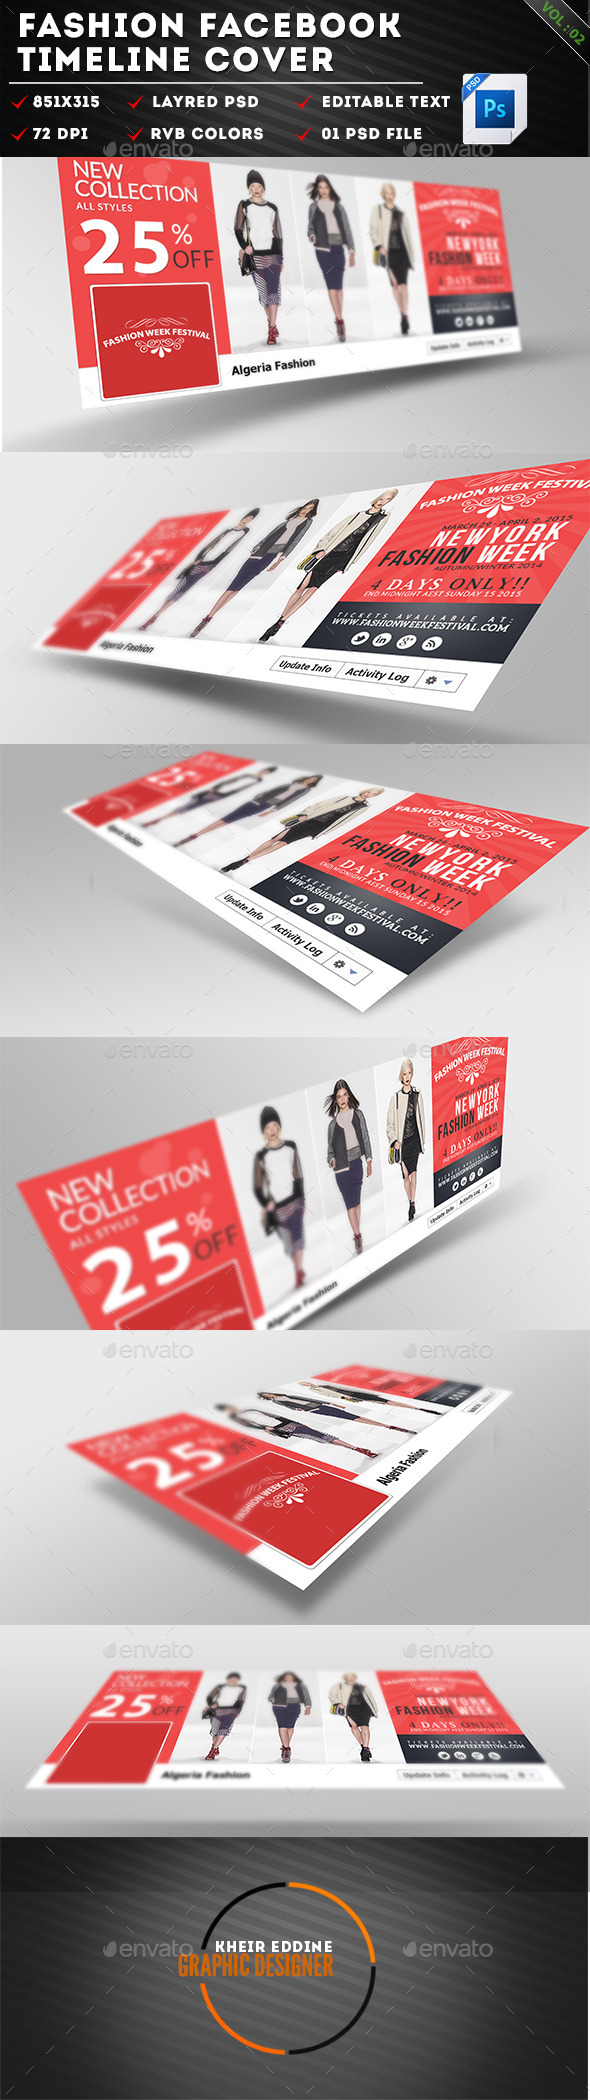 GraphicRiver Fashion Facebook Timeline Cover Vol 02 11306629